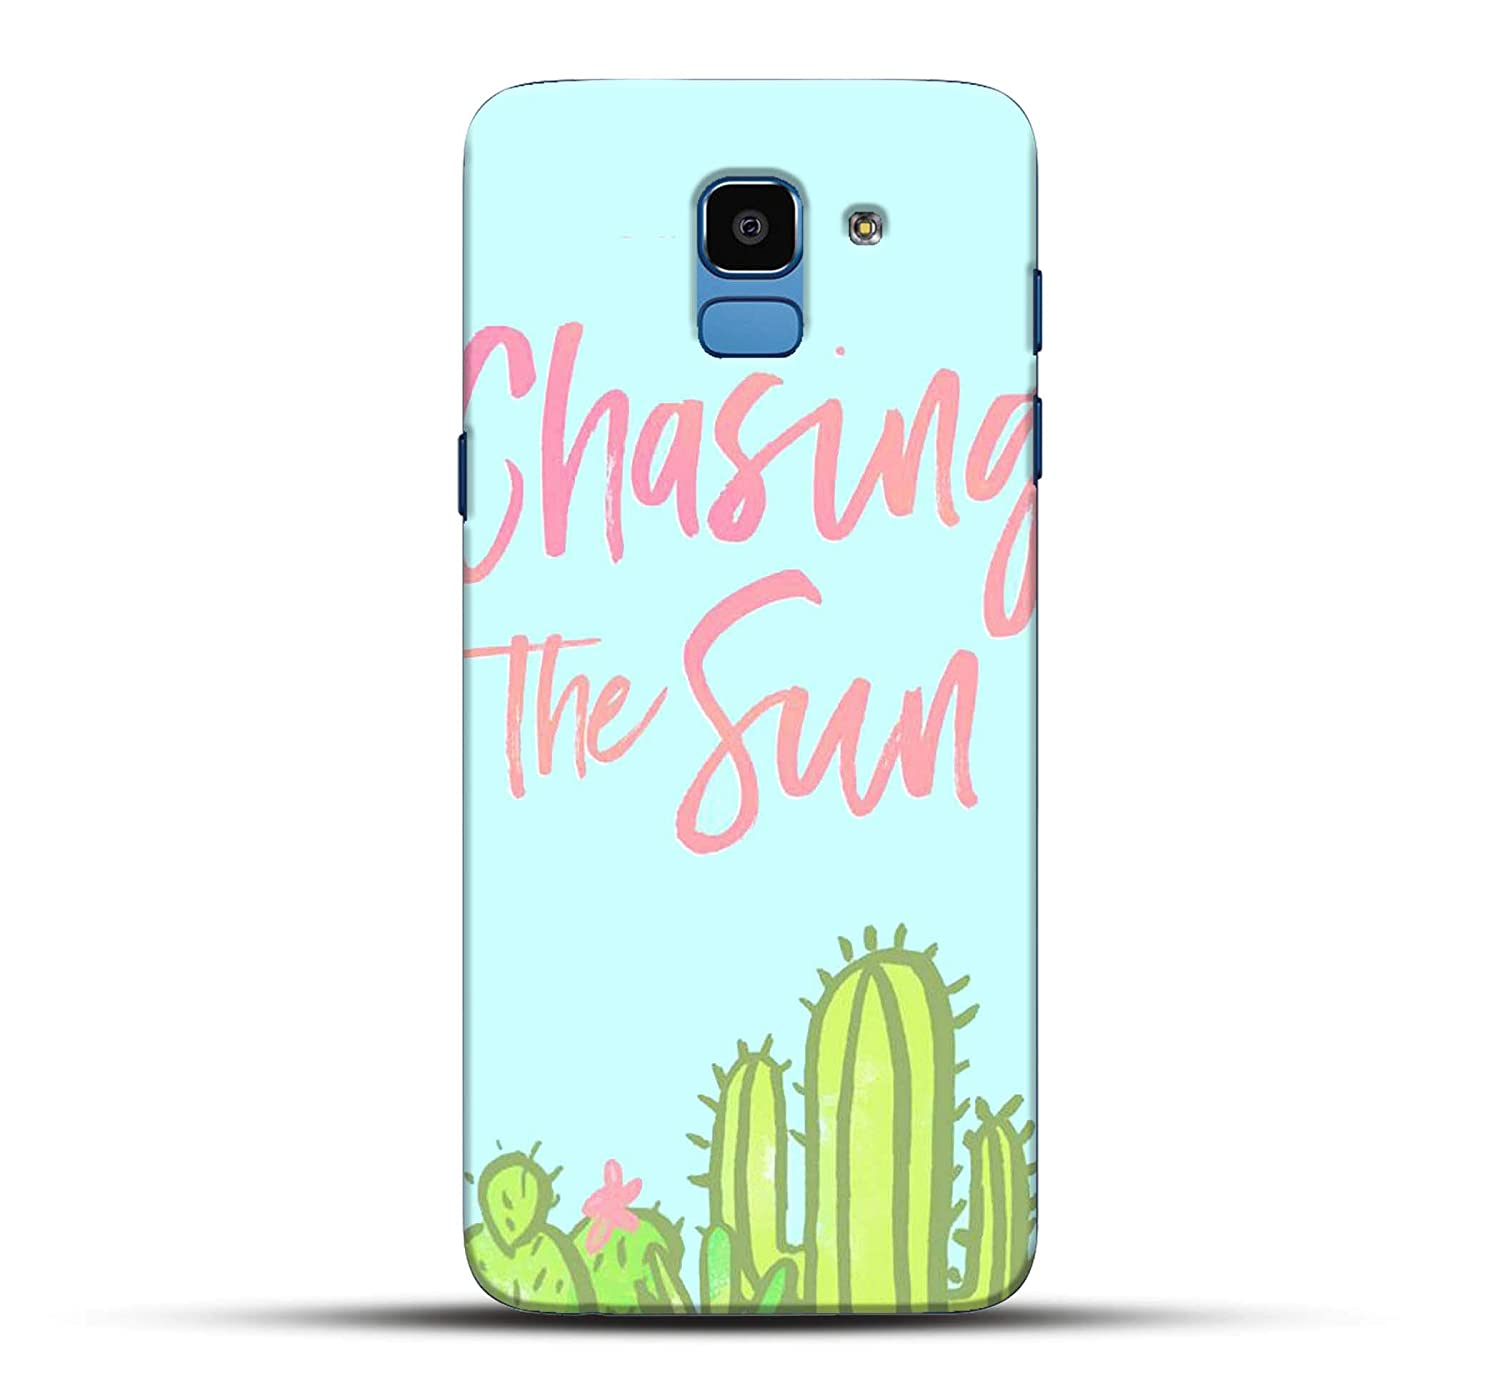 pikkme pink quote quotes chasing the sun green in